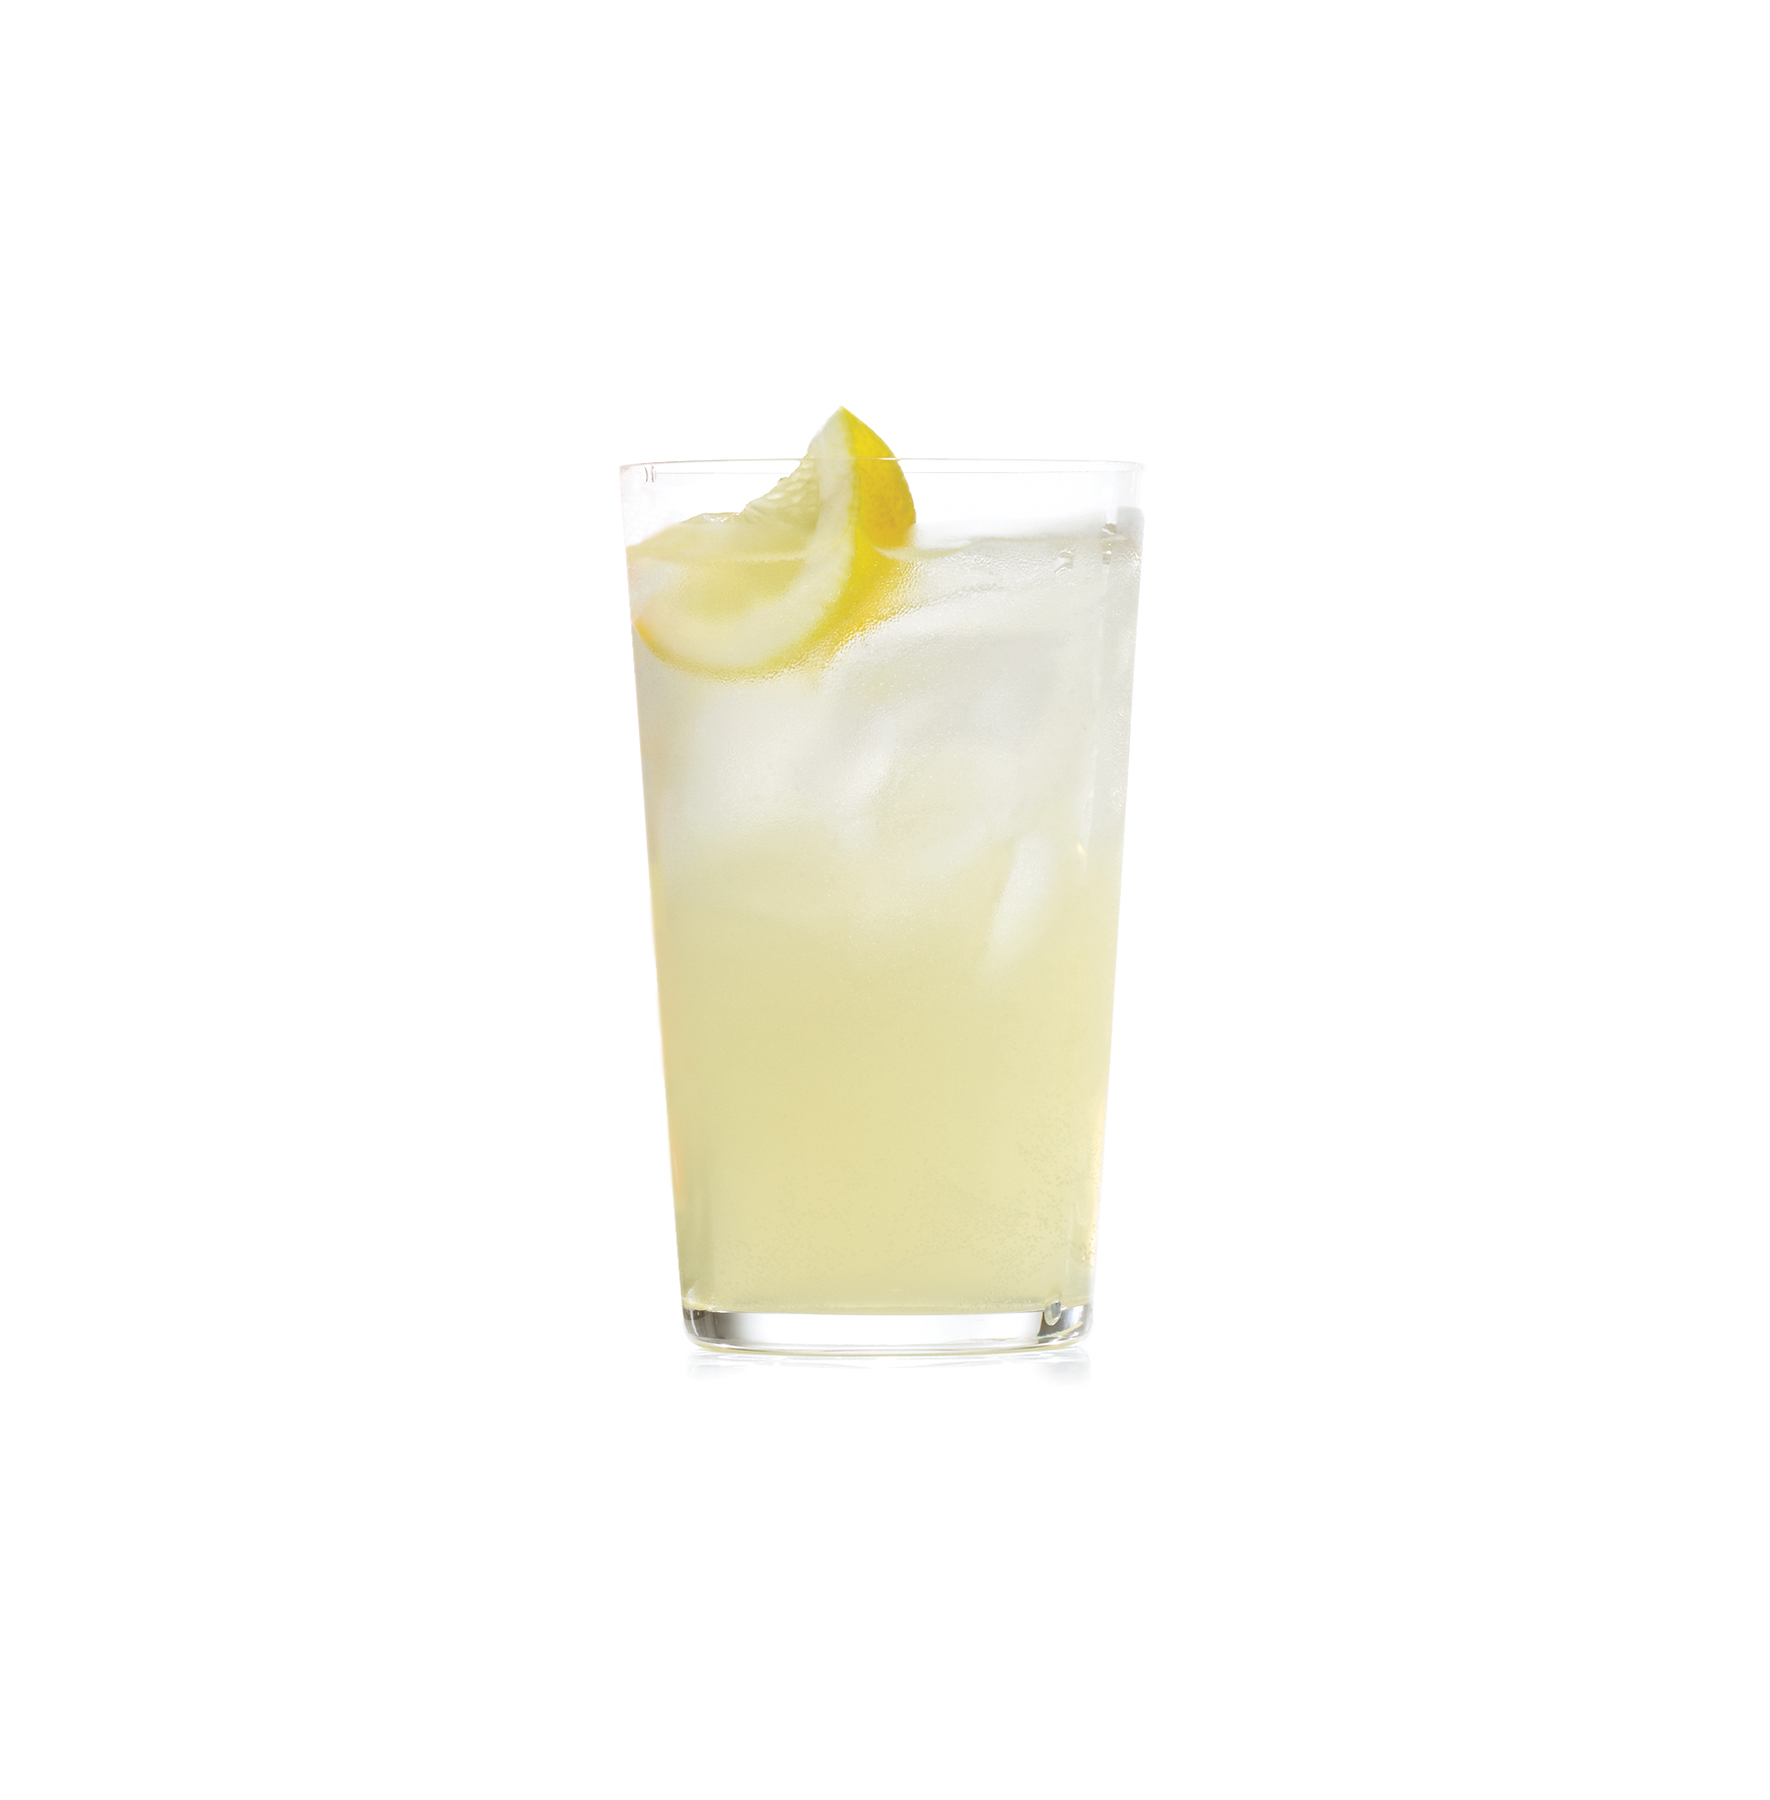 lemony-gin-punch